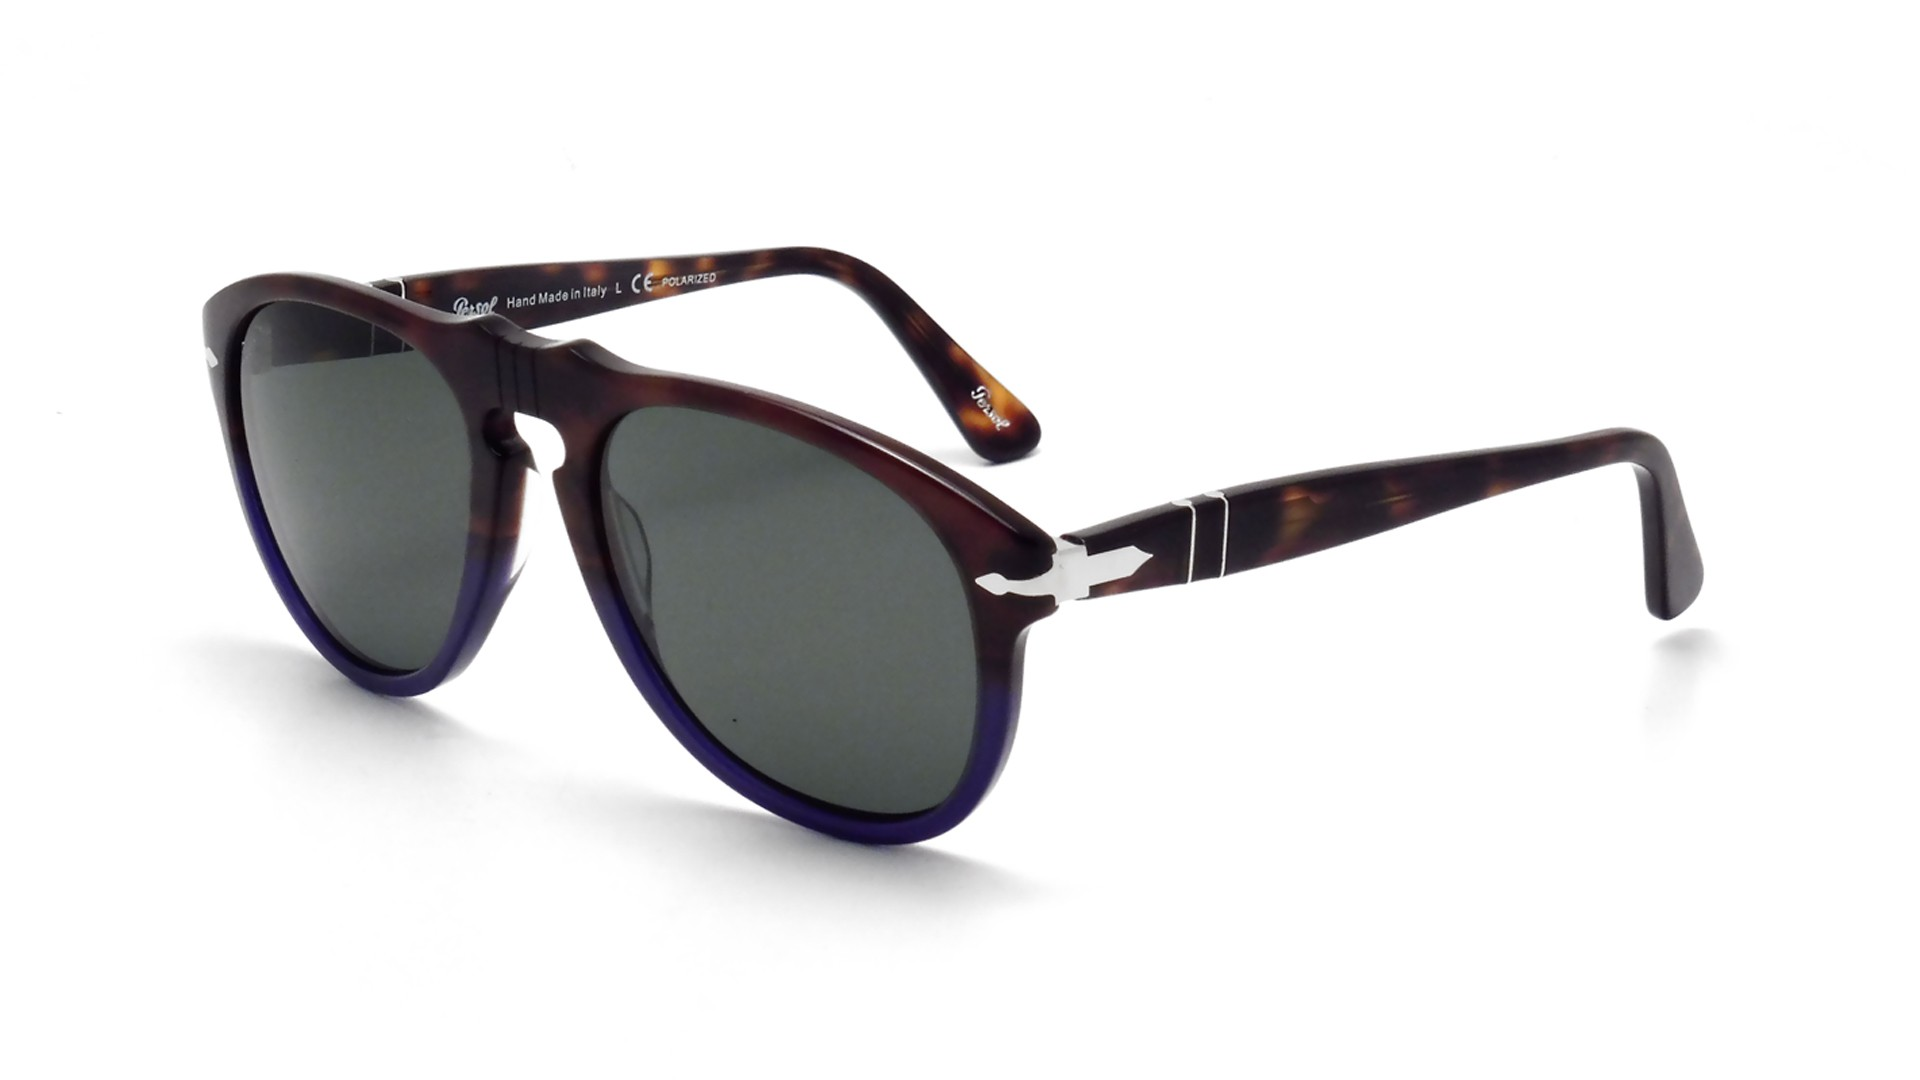 e275561abd52 Persol 649 Polarized – Southern California Weather Force